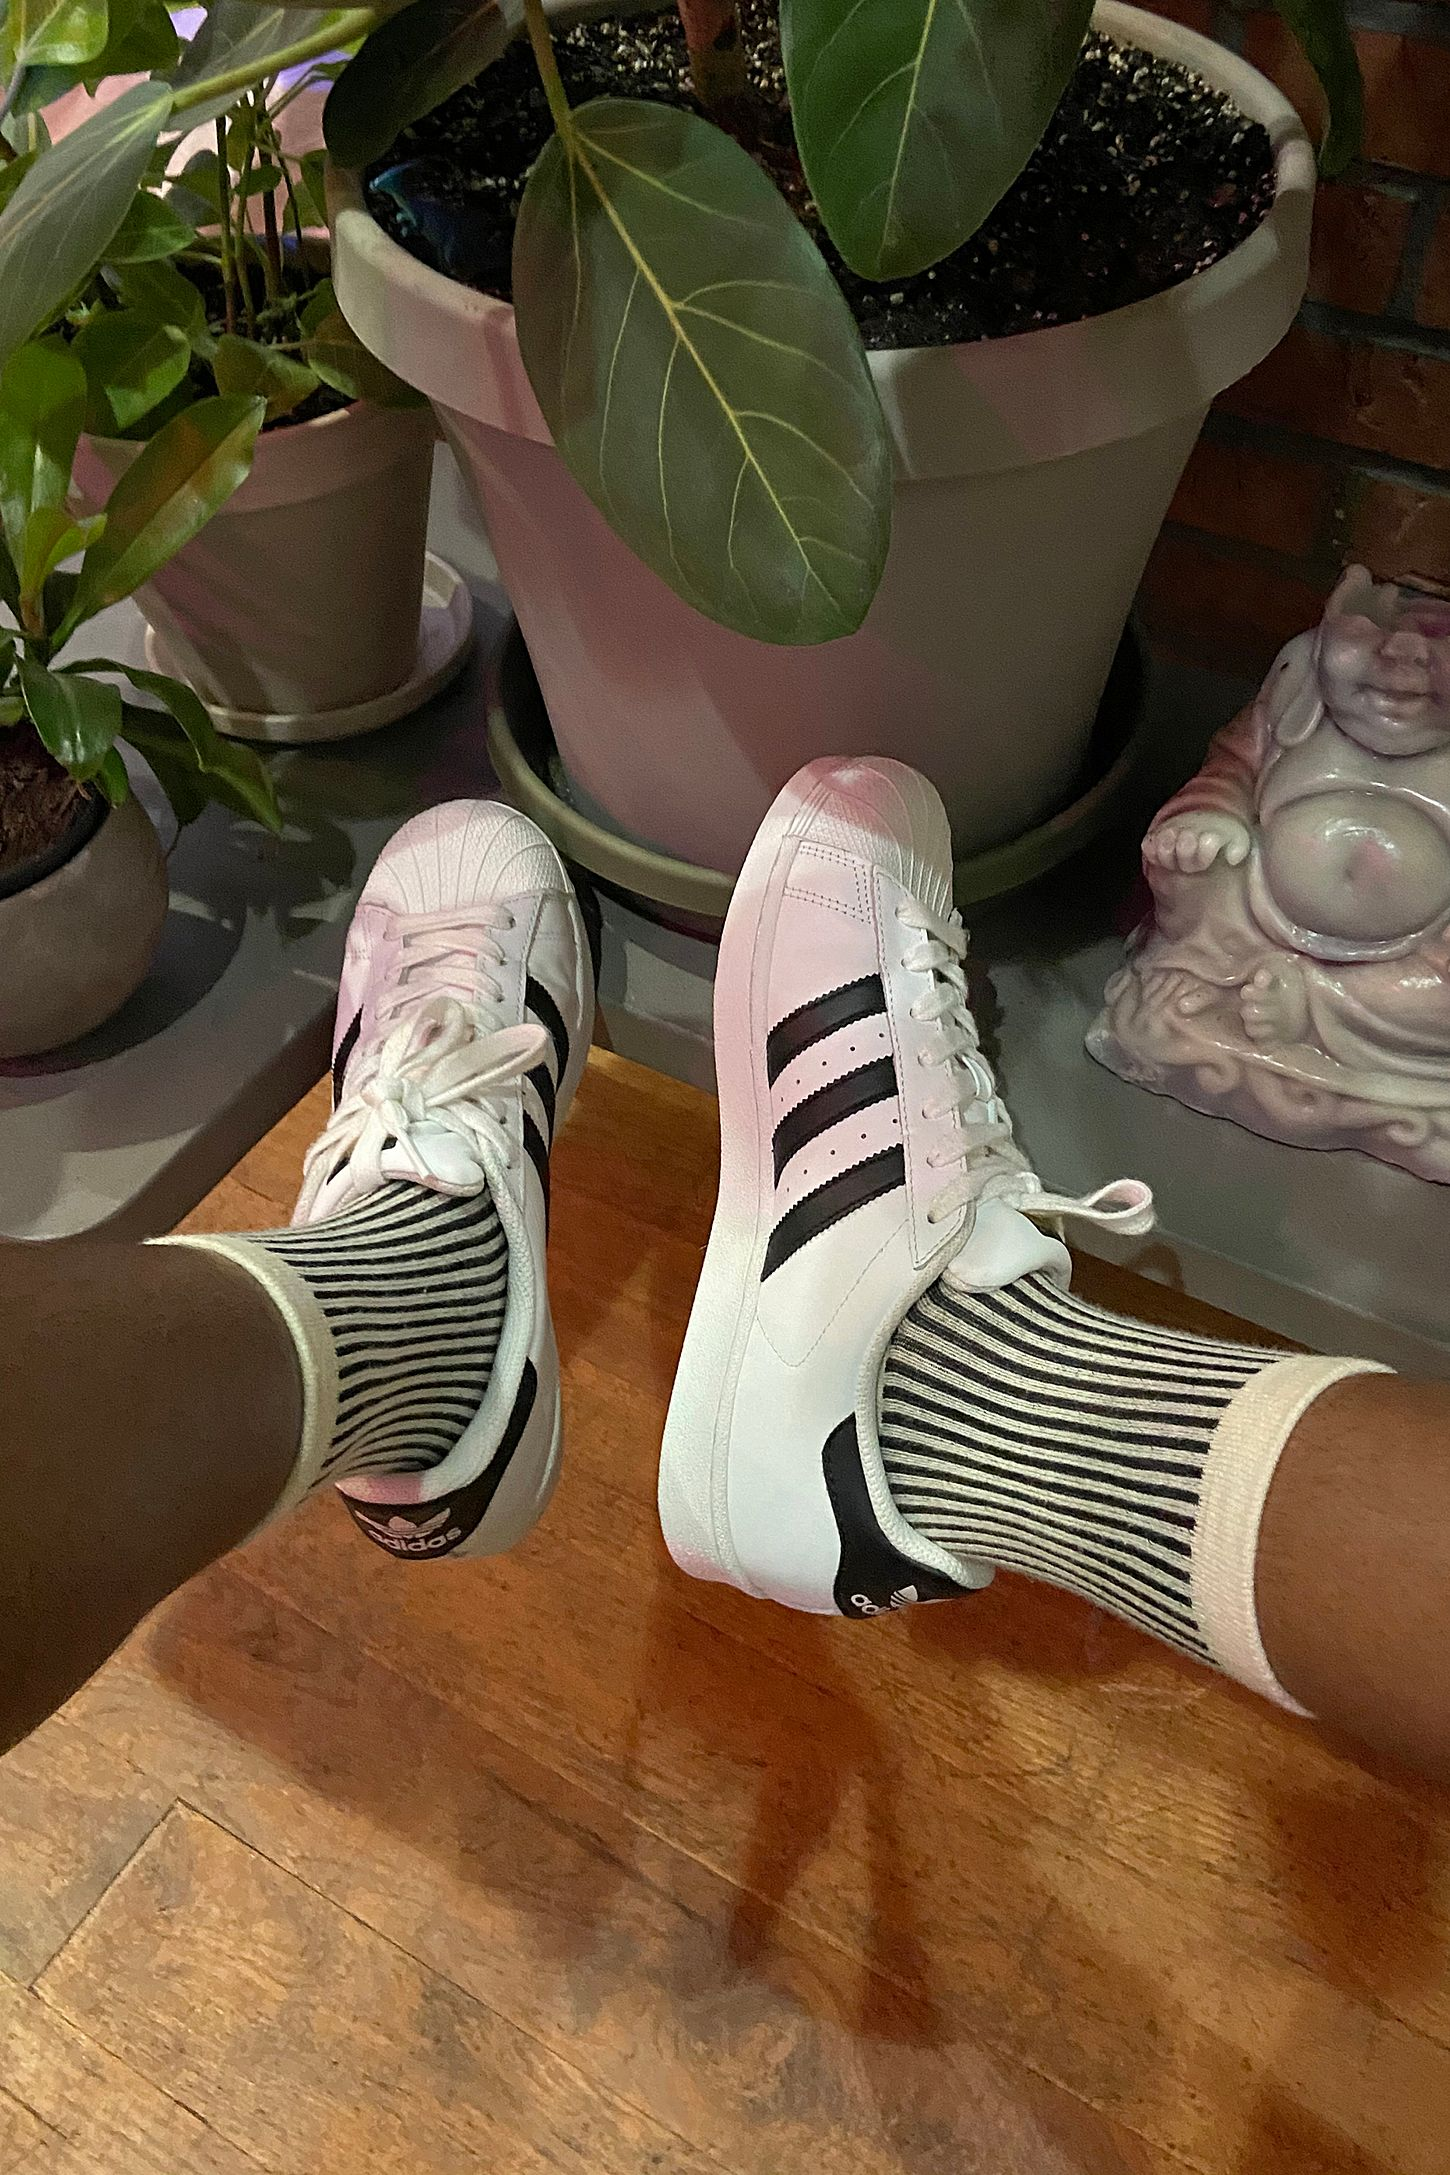 do adidas superstars run big or small